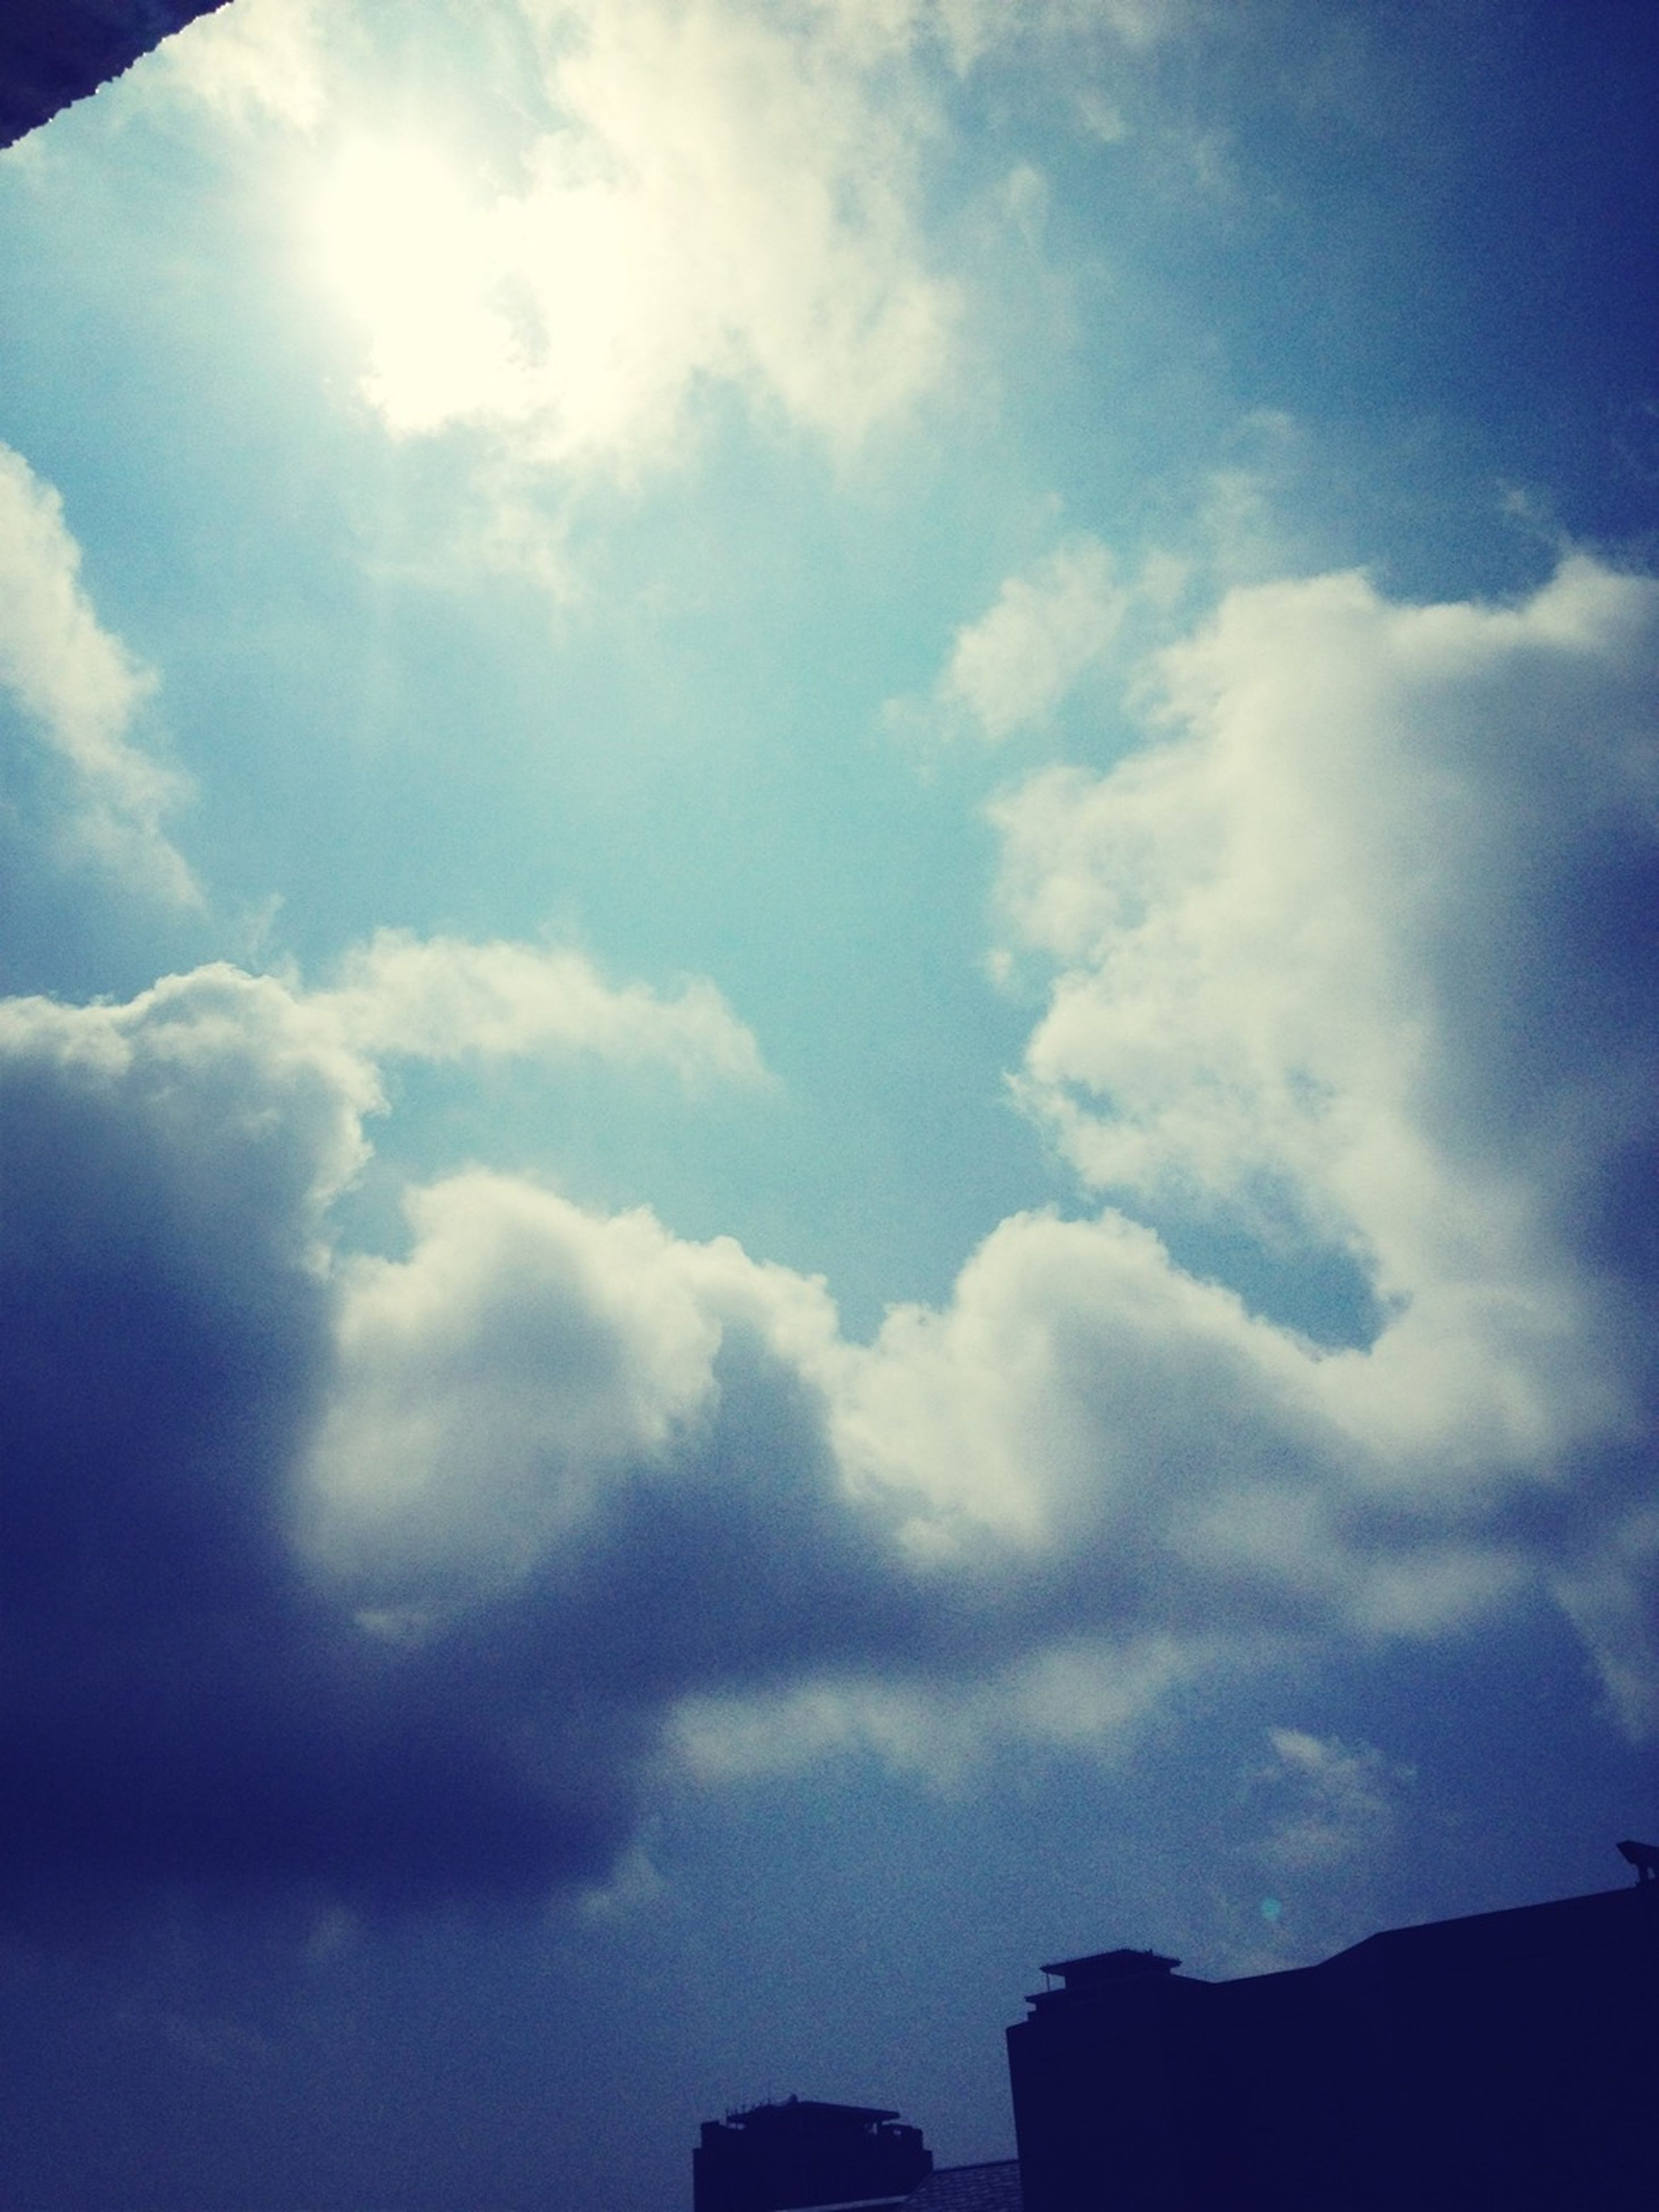 low angle view, sky, cloud - sky, building exterior, architecture, built structure, silhouette, cloudy, cloud, blue, high section, nature, beauty in nature, sunlight, outdoors, cloudscape, no people, building, day, weather